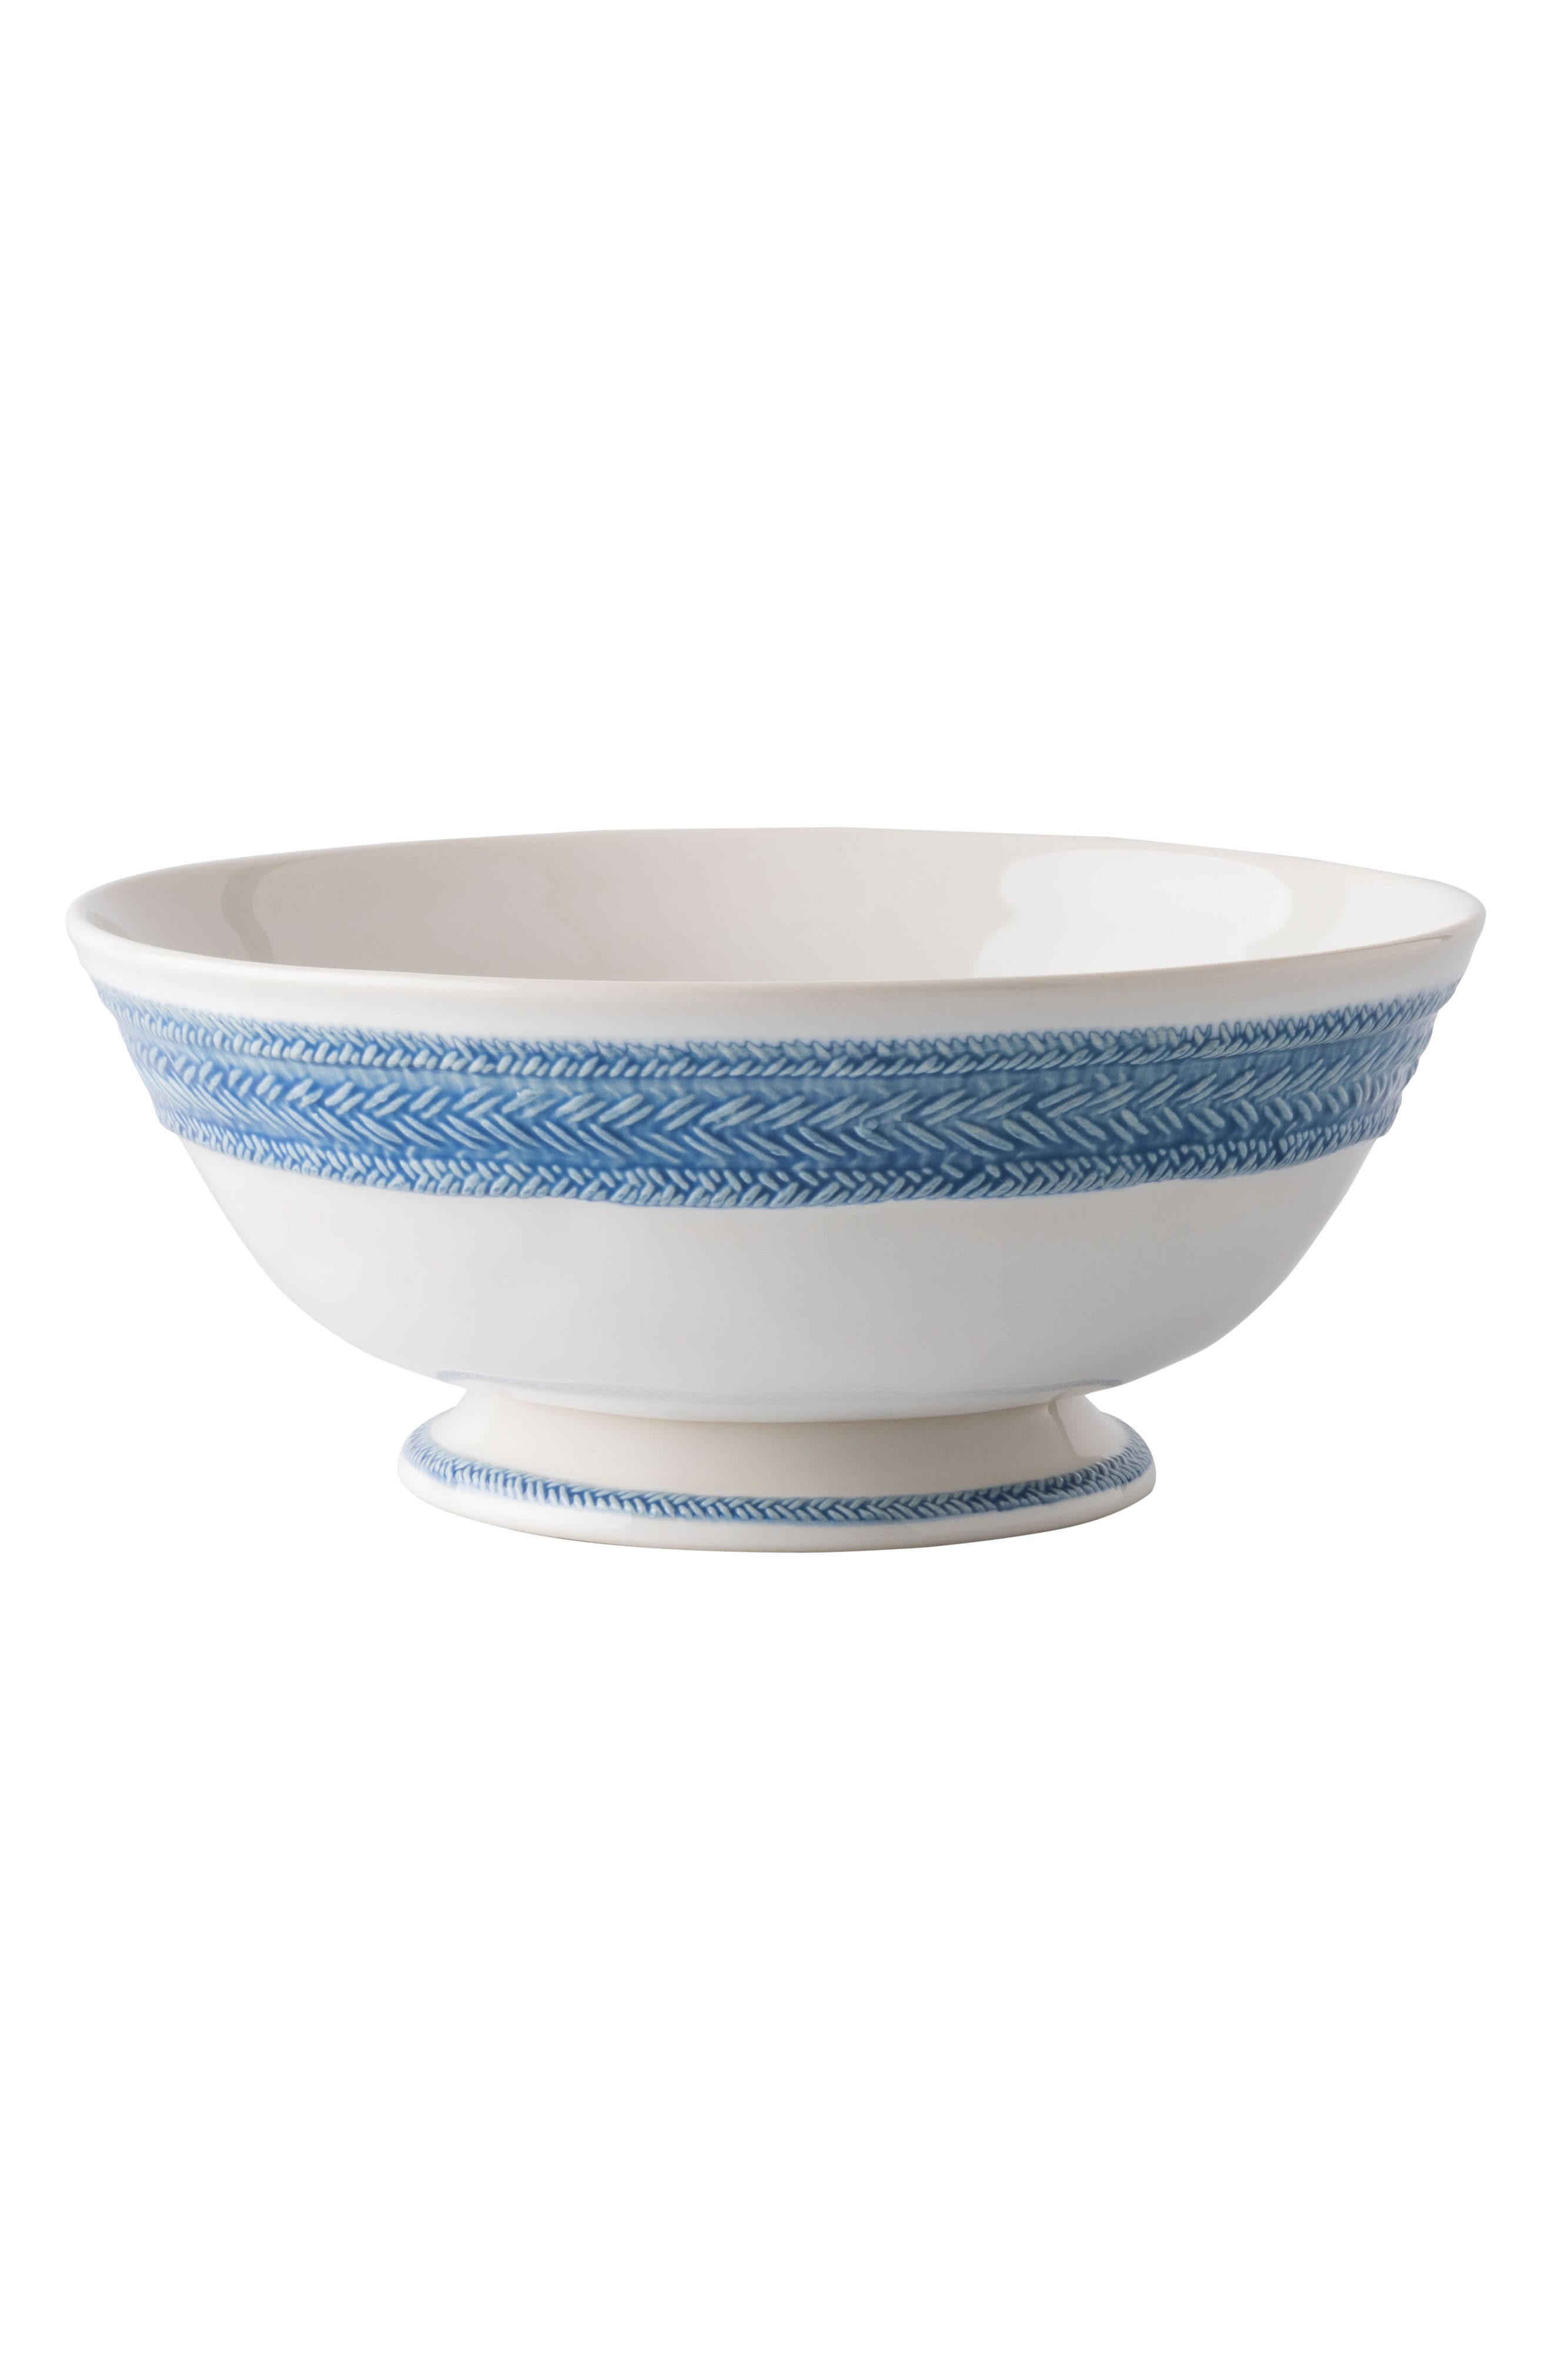 Le Panier Footed Fruit Bowl,                         Main,                         color, WHITEWASH/ DELFT BLUE